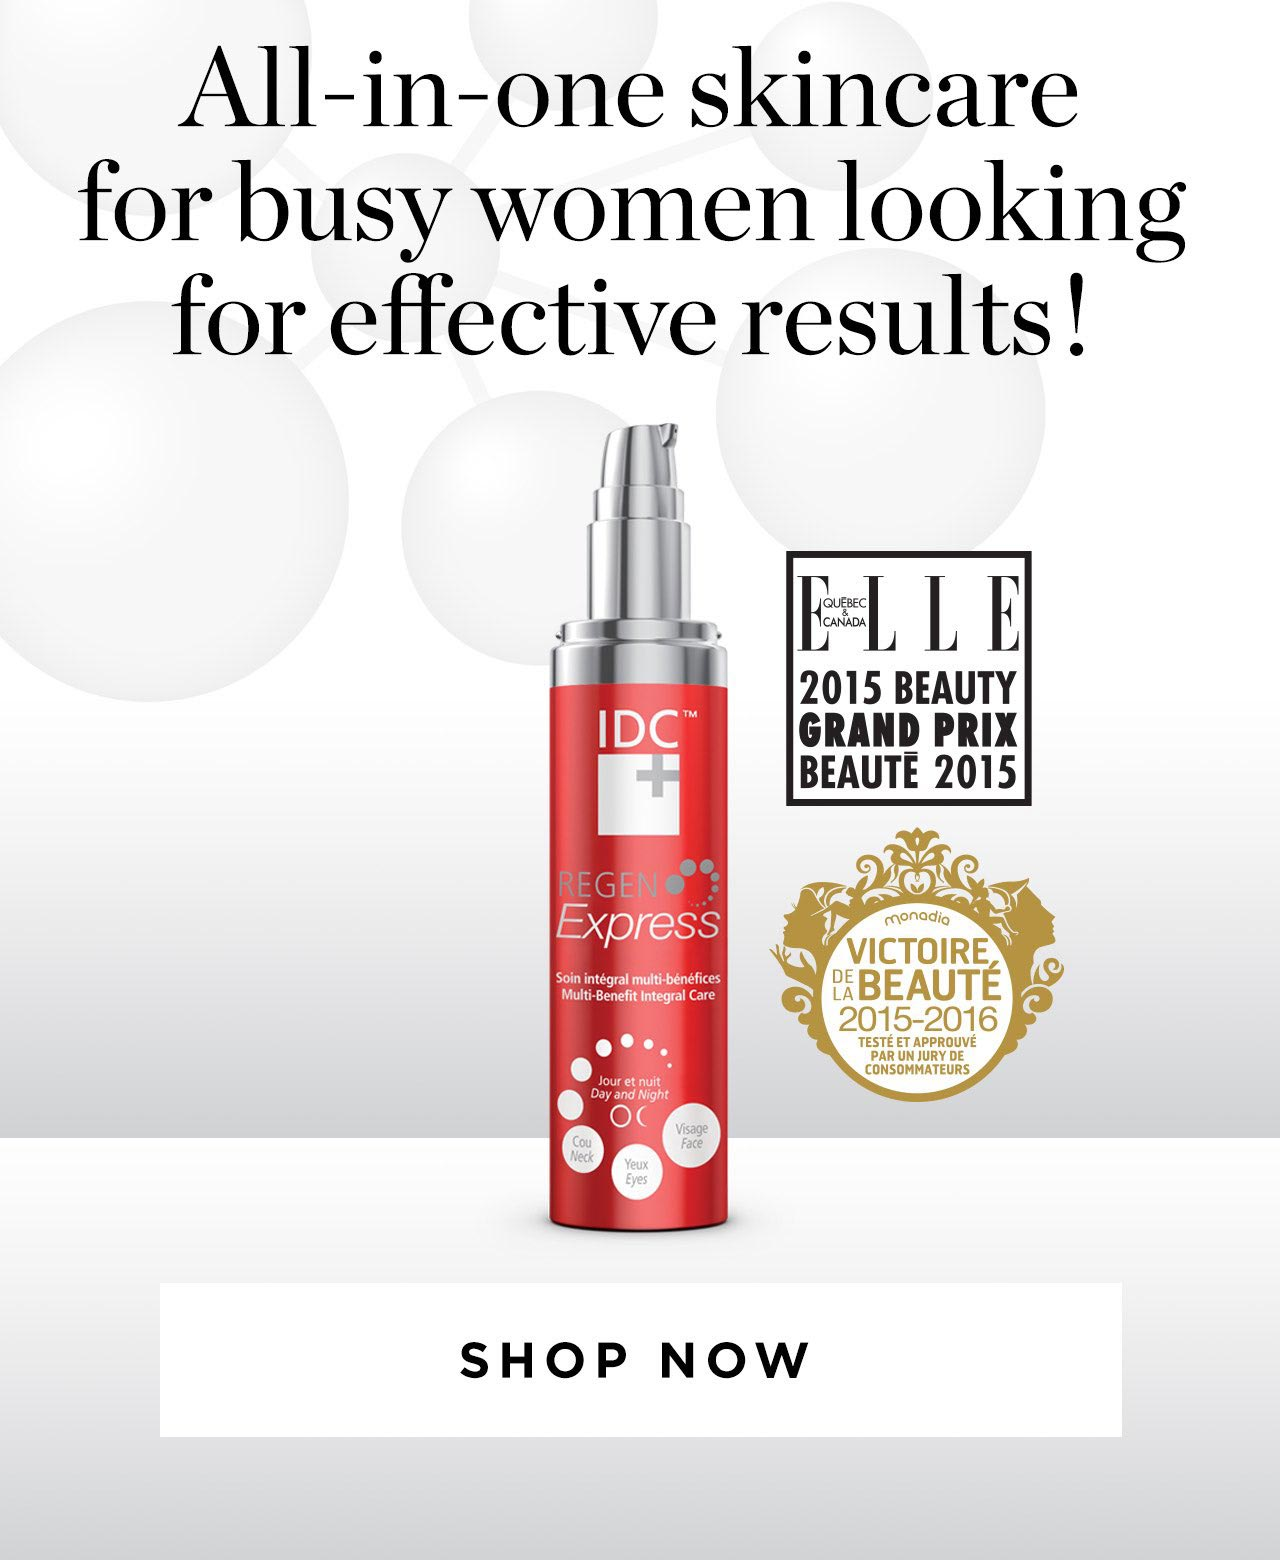 All-in-one skincare for busy women looking for effective results!